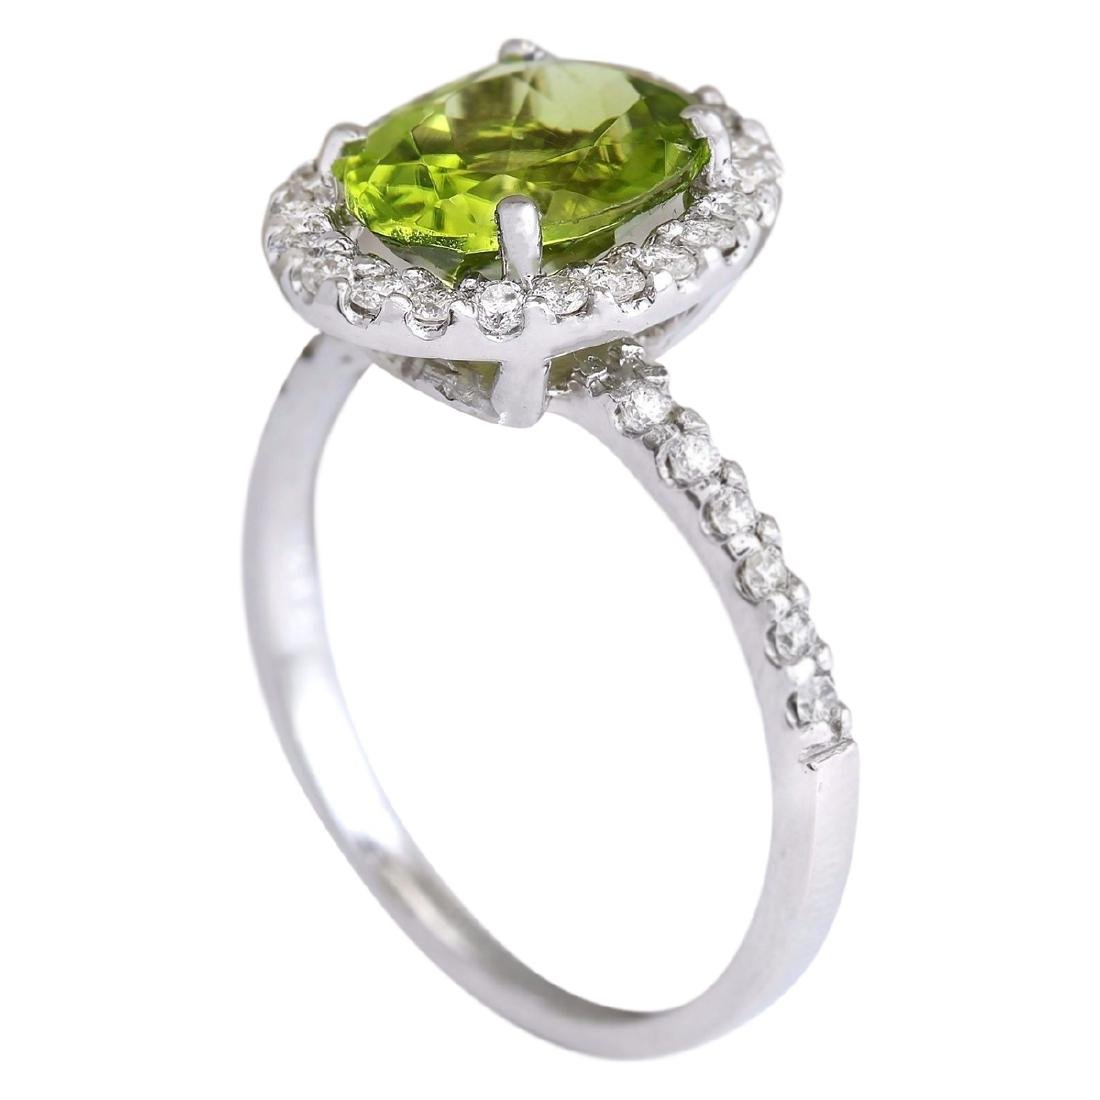 3.03 CTW Natural Peridot And Diamond Ring In 18K White - 3